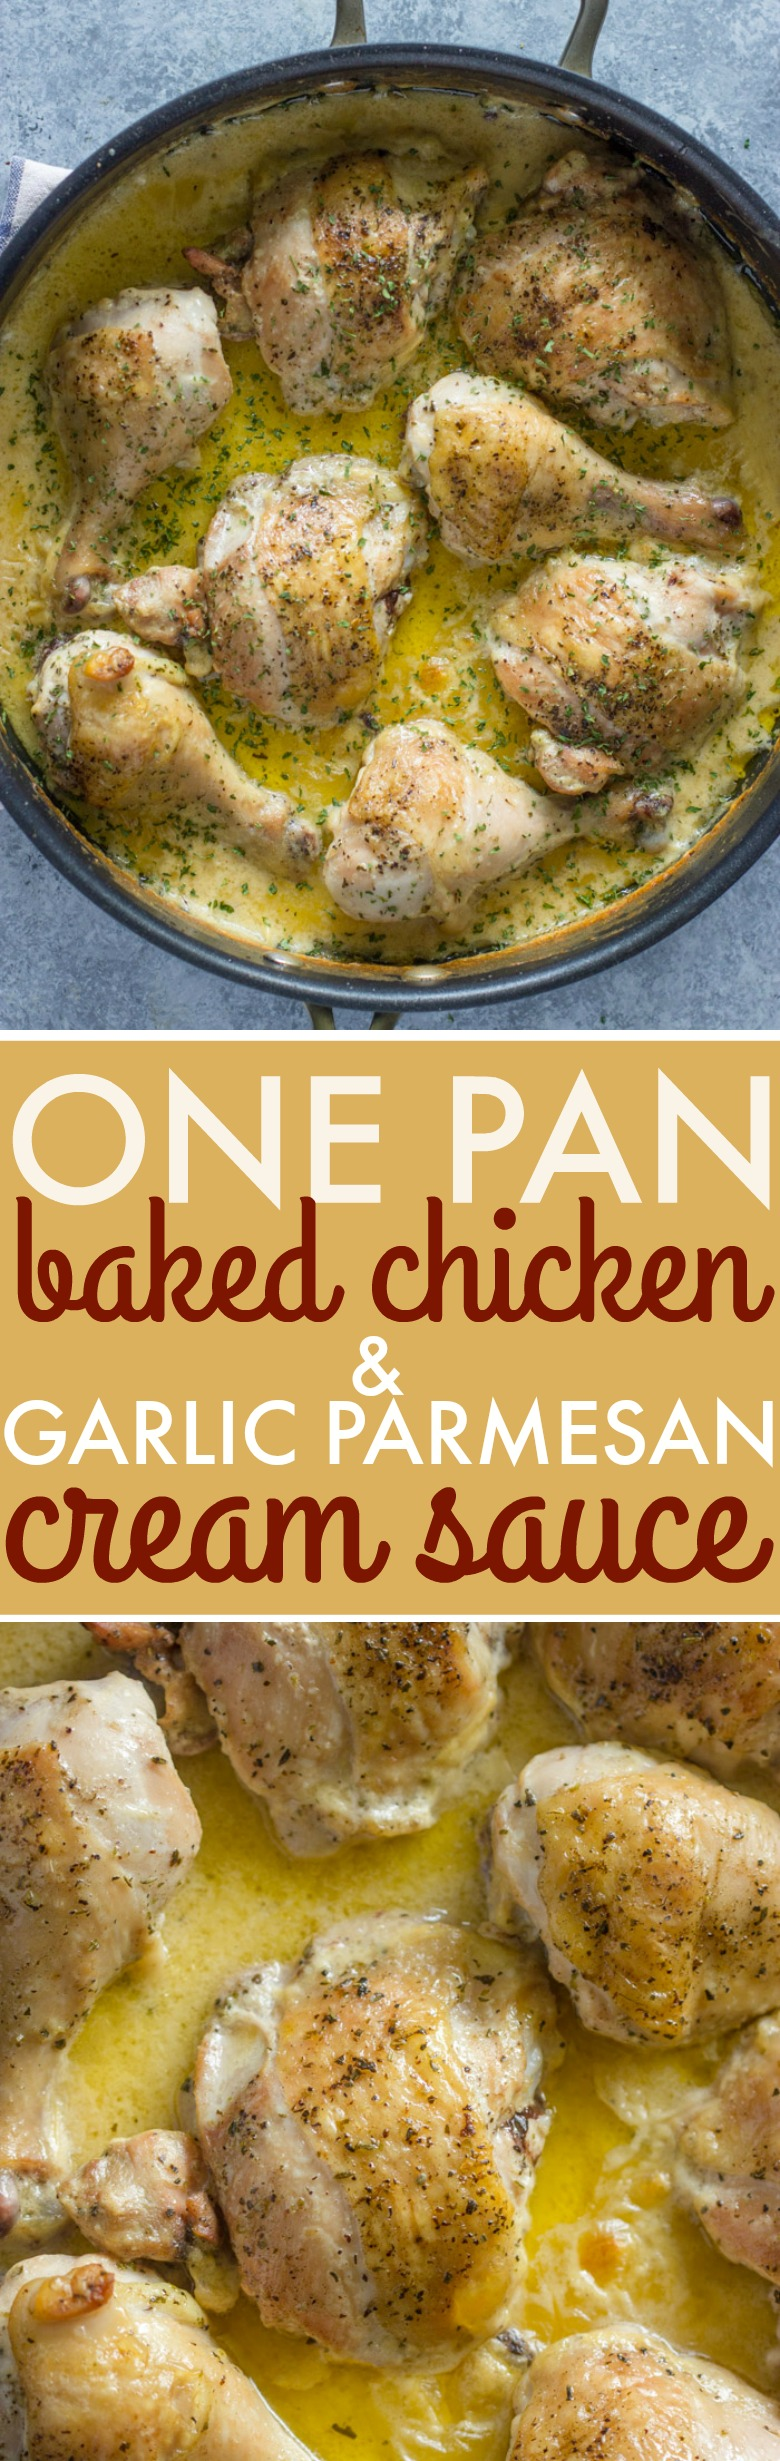 One pan Baked Chicken with Garlic Parmesan Cream Sauce